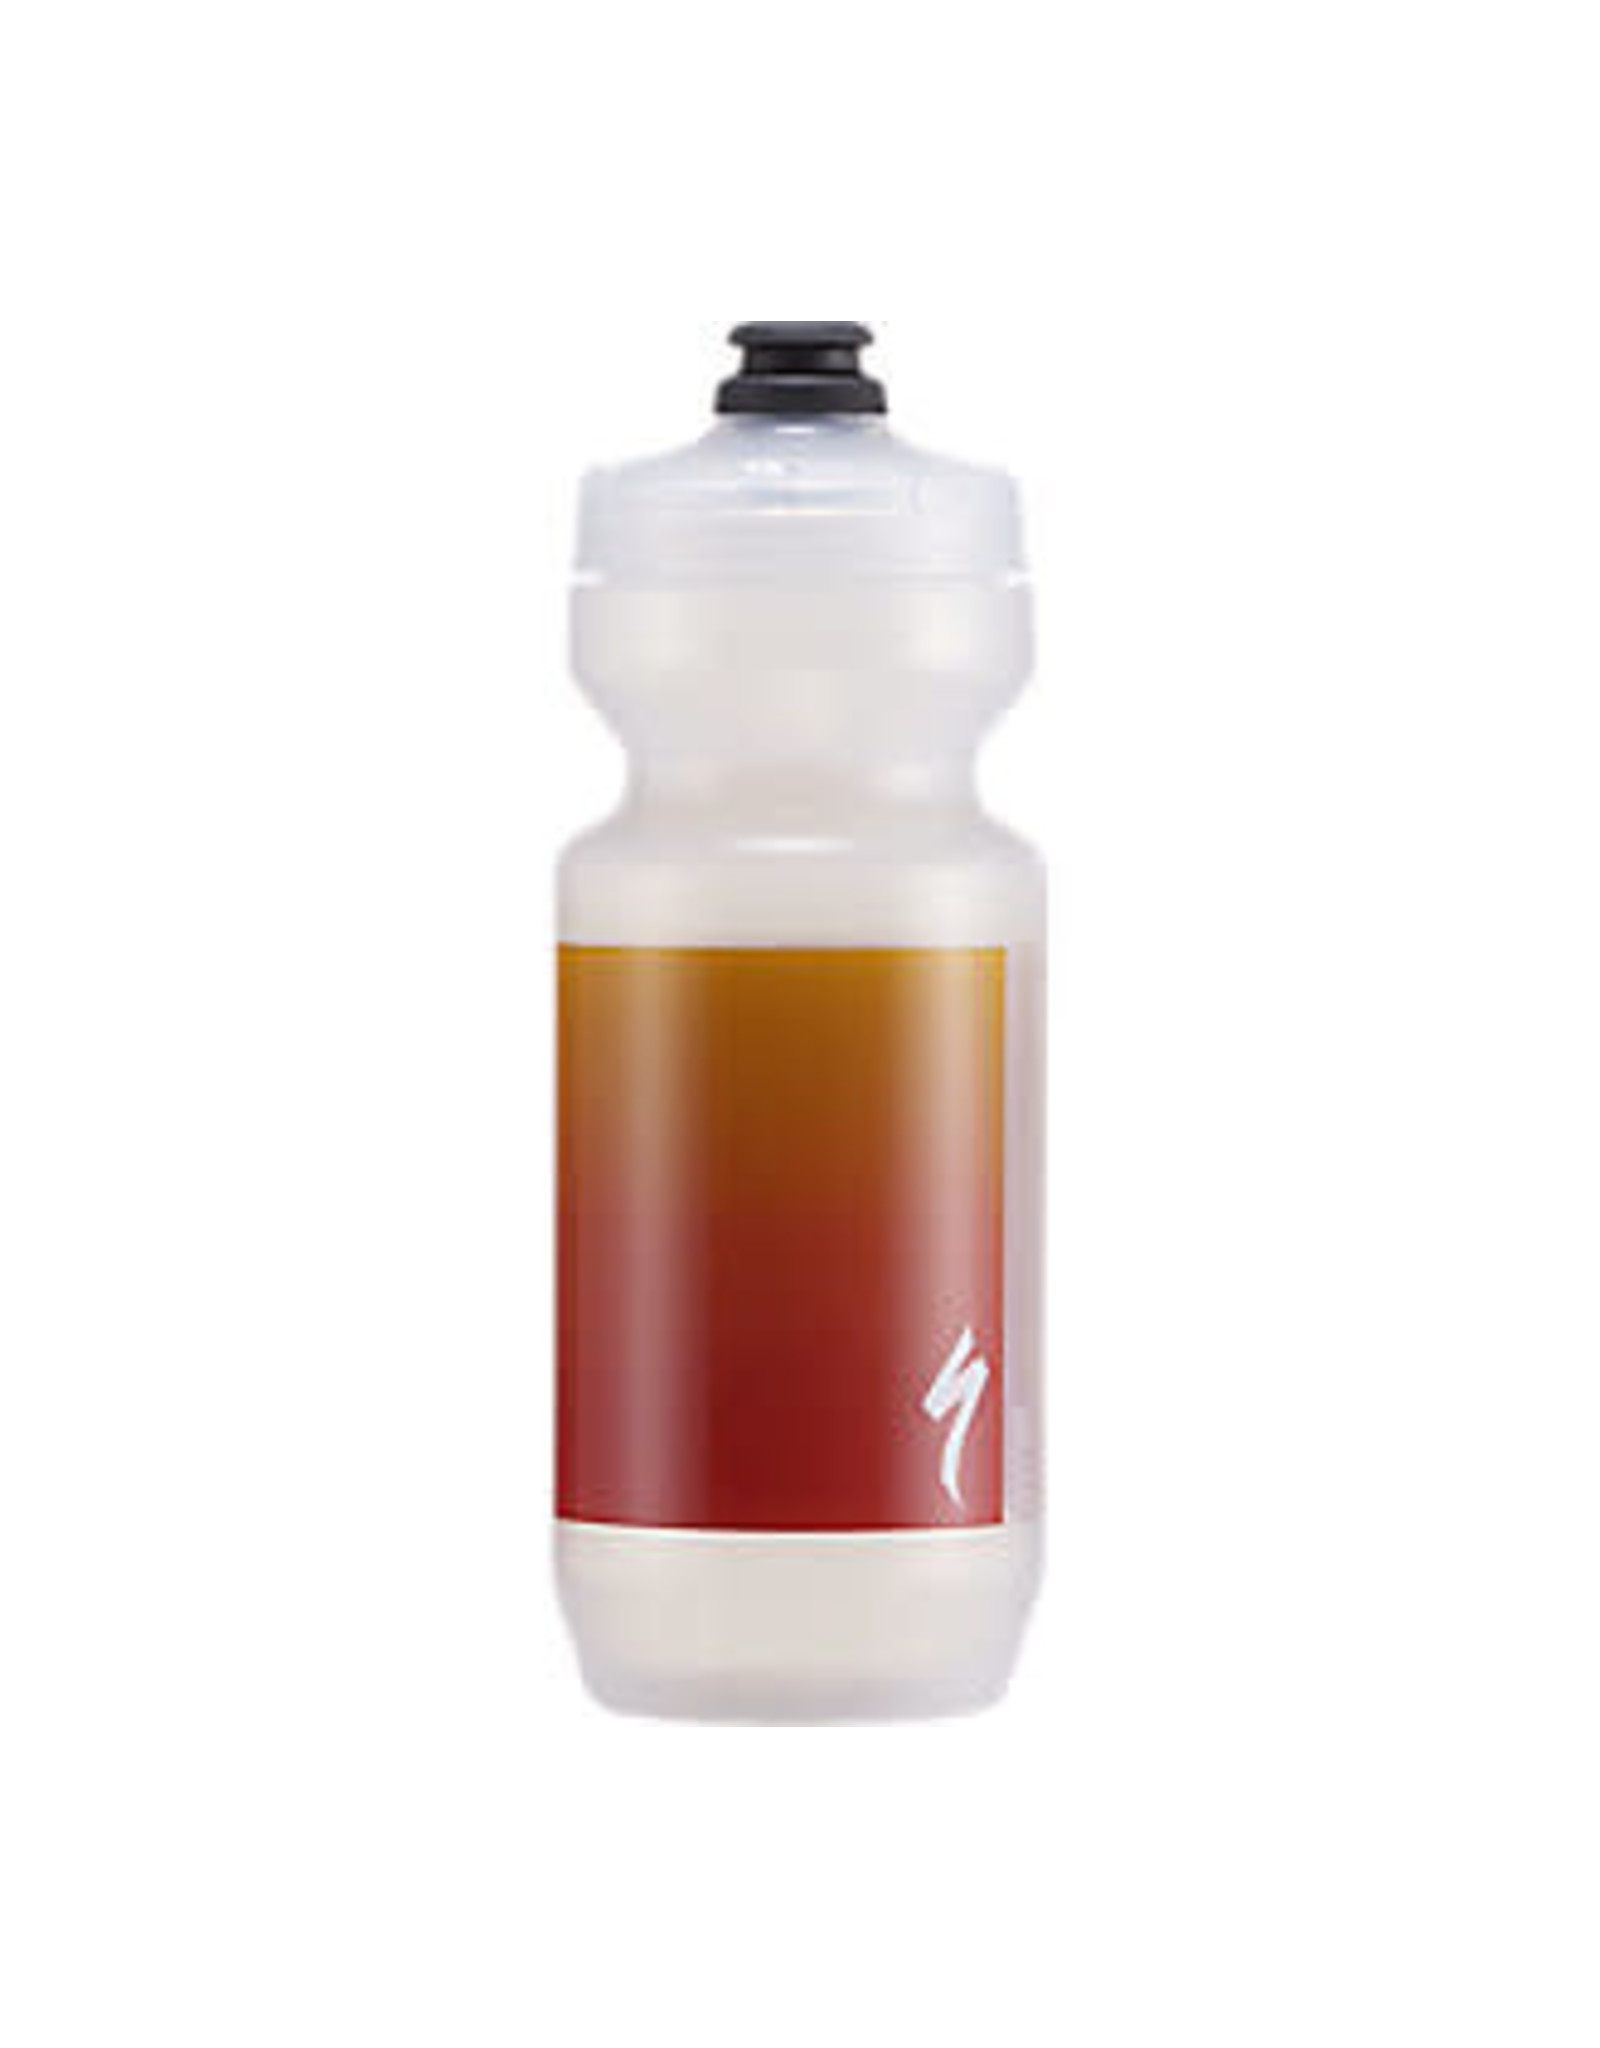 SPECIALIZED Specialized Purist Mflo Bottle - Clear Red Gravity - 22oz